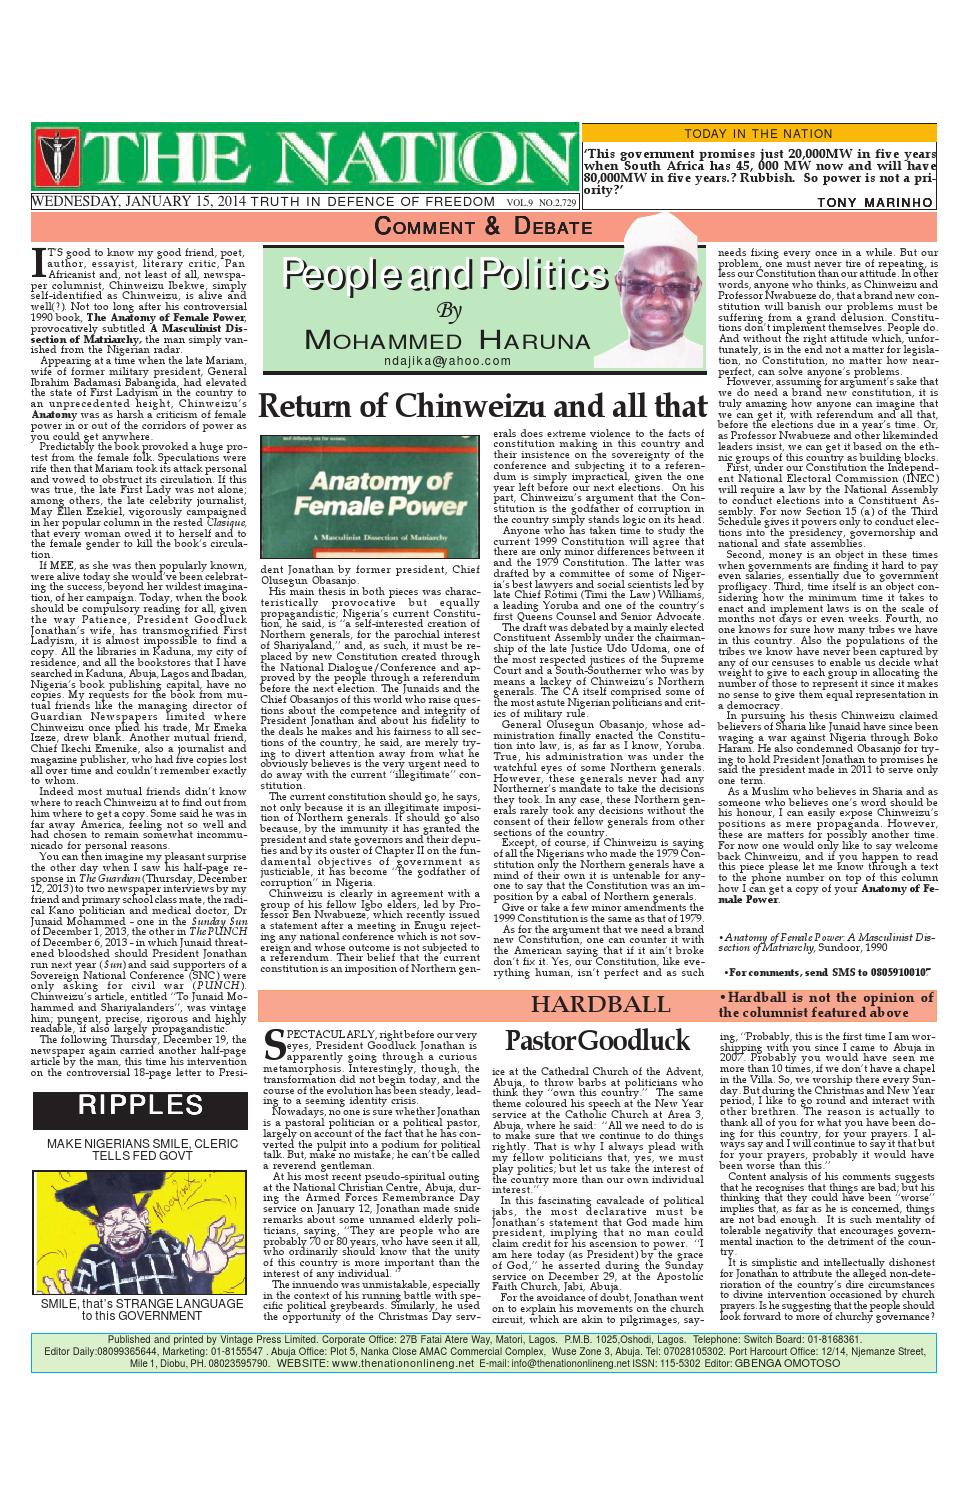 The Nation Jan 15, 2014 by The Nation - issuu